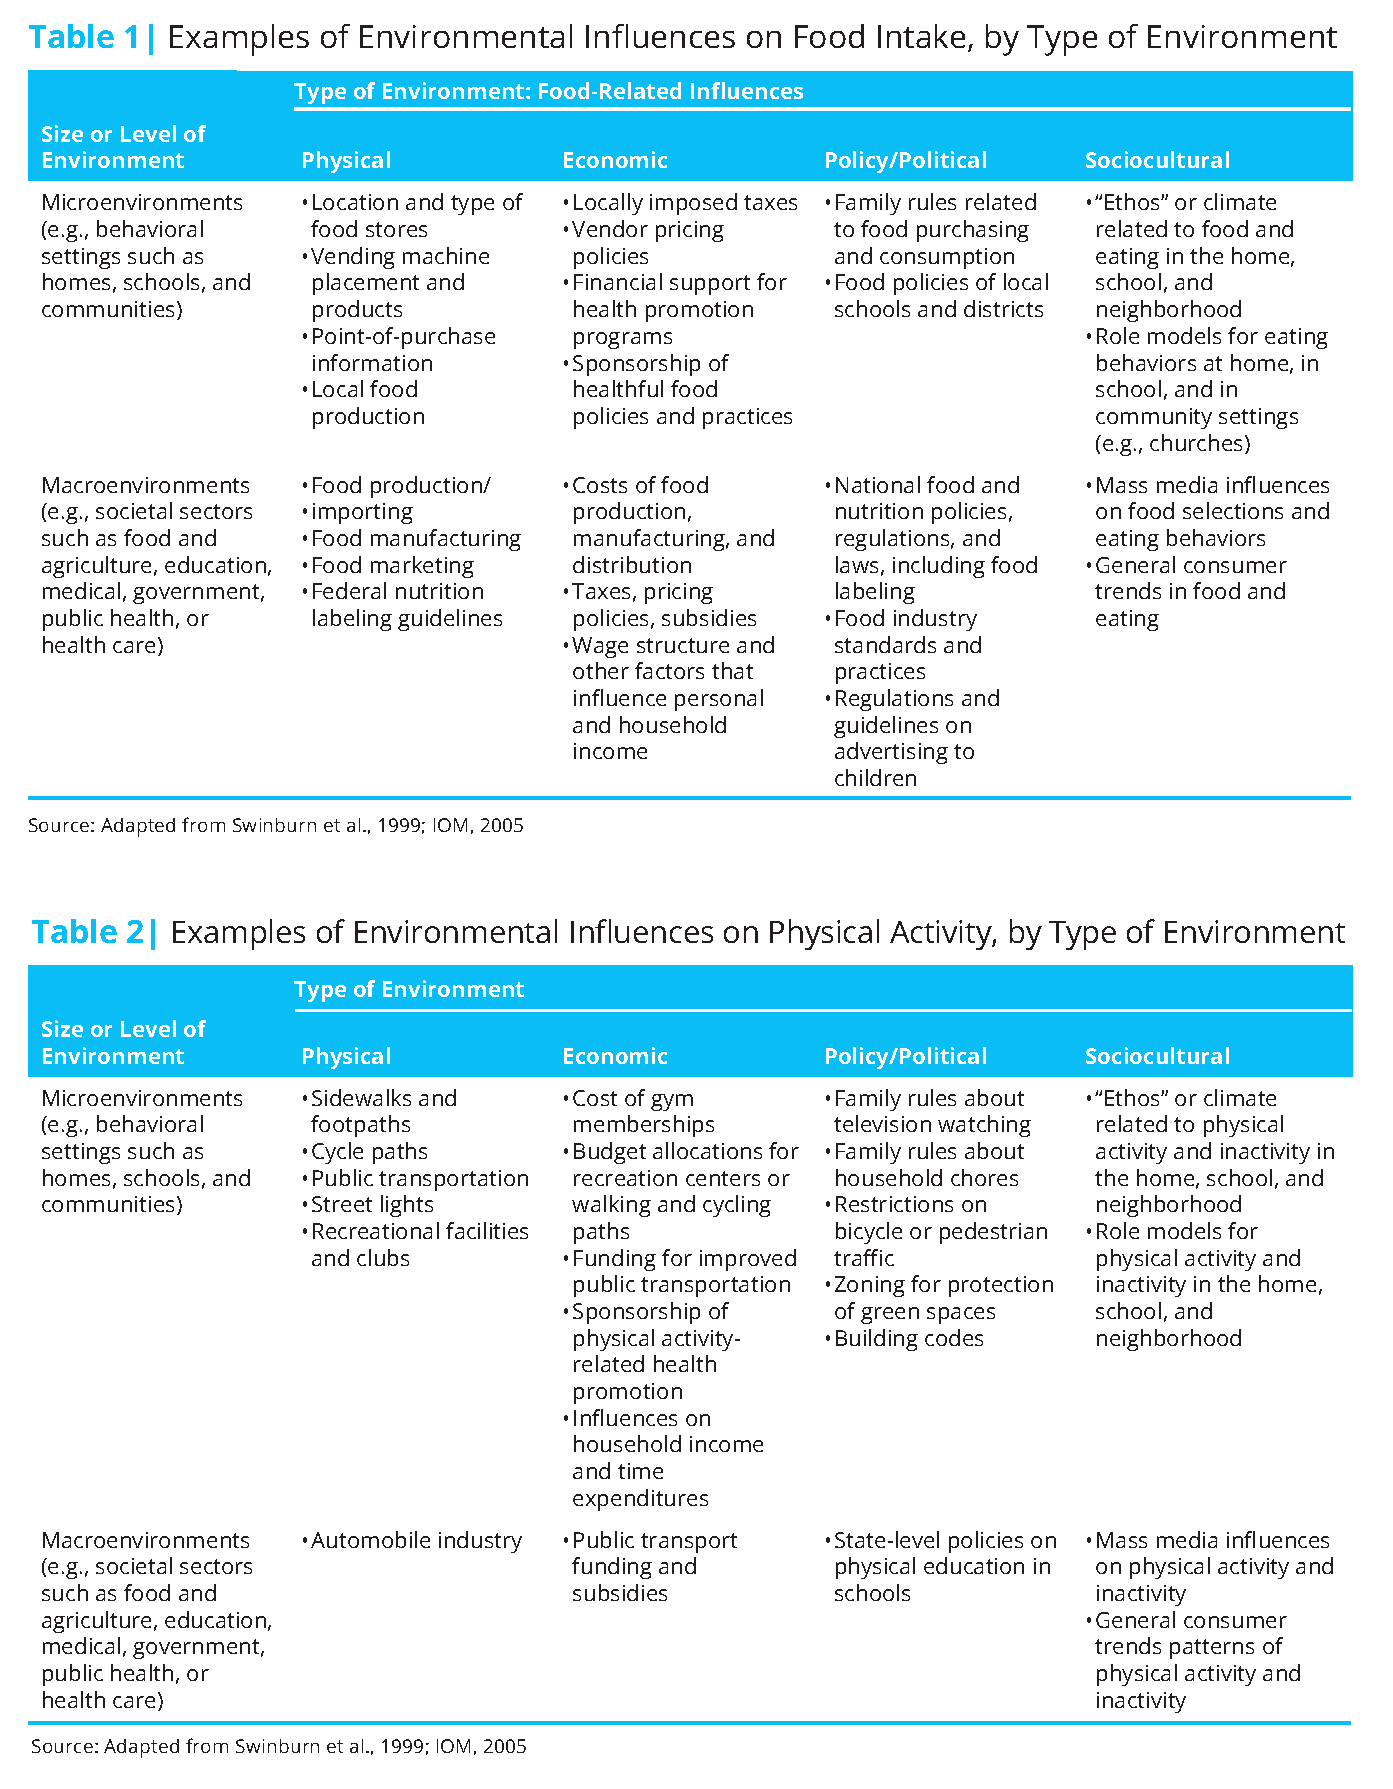 Getting To Equity In Obesity Prevention A New Framework National Academy Of Medicine